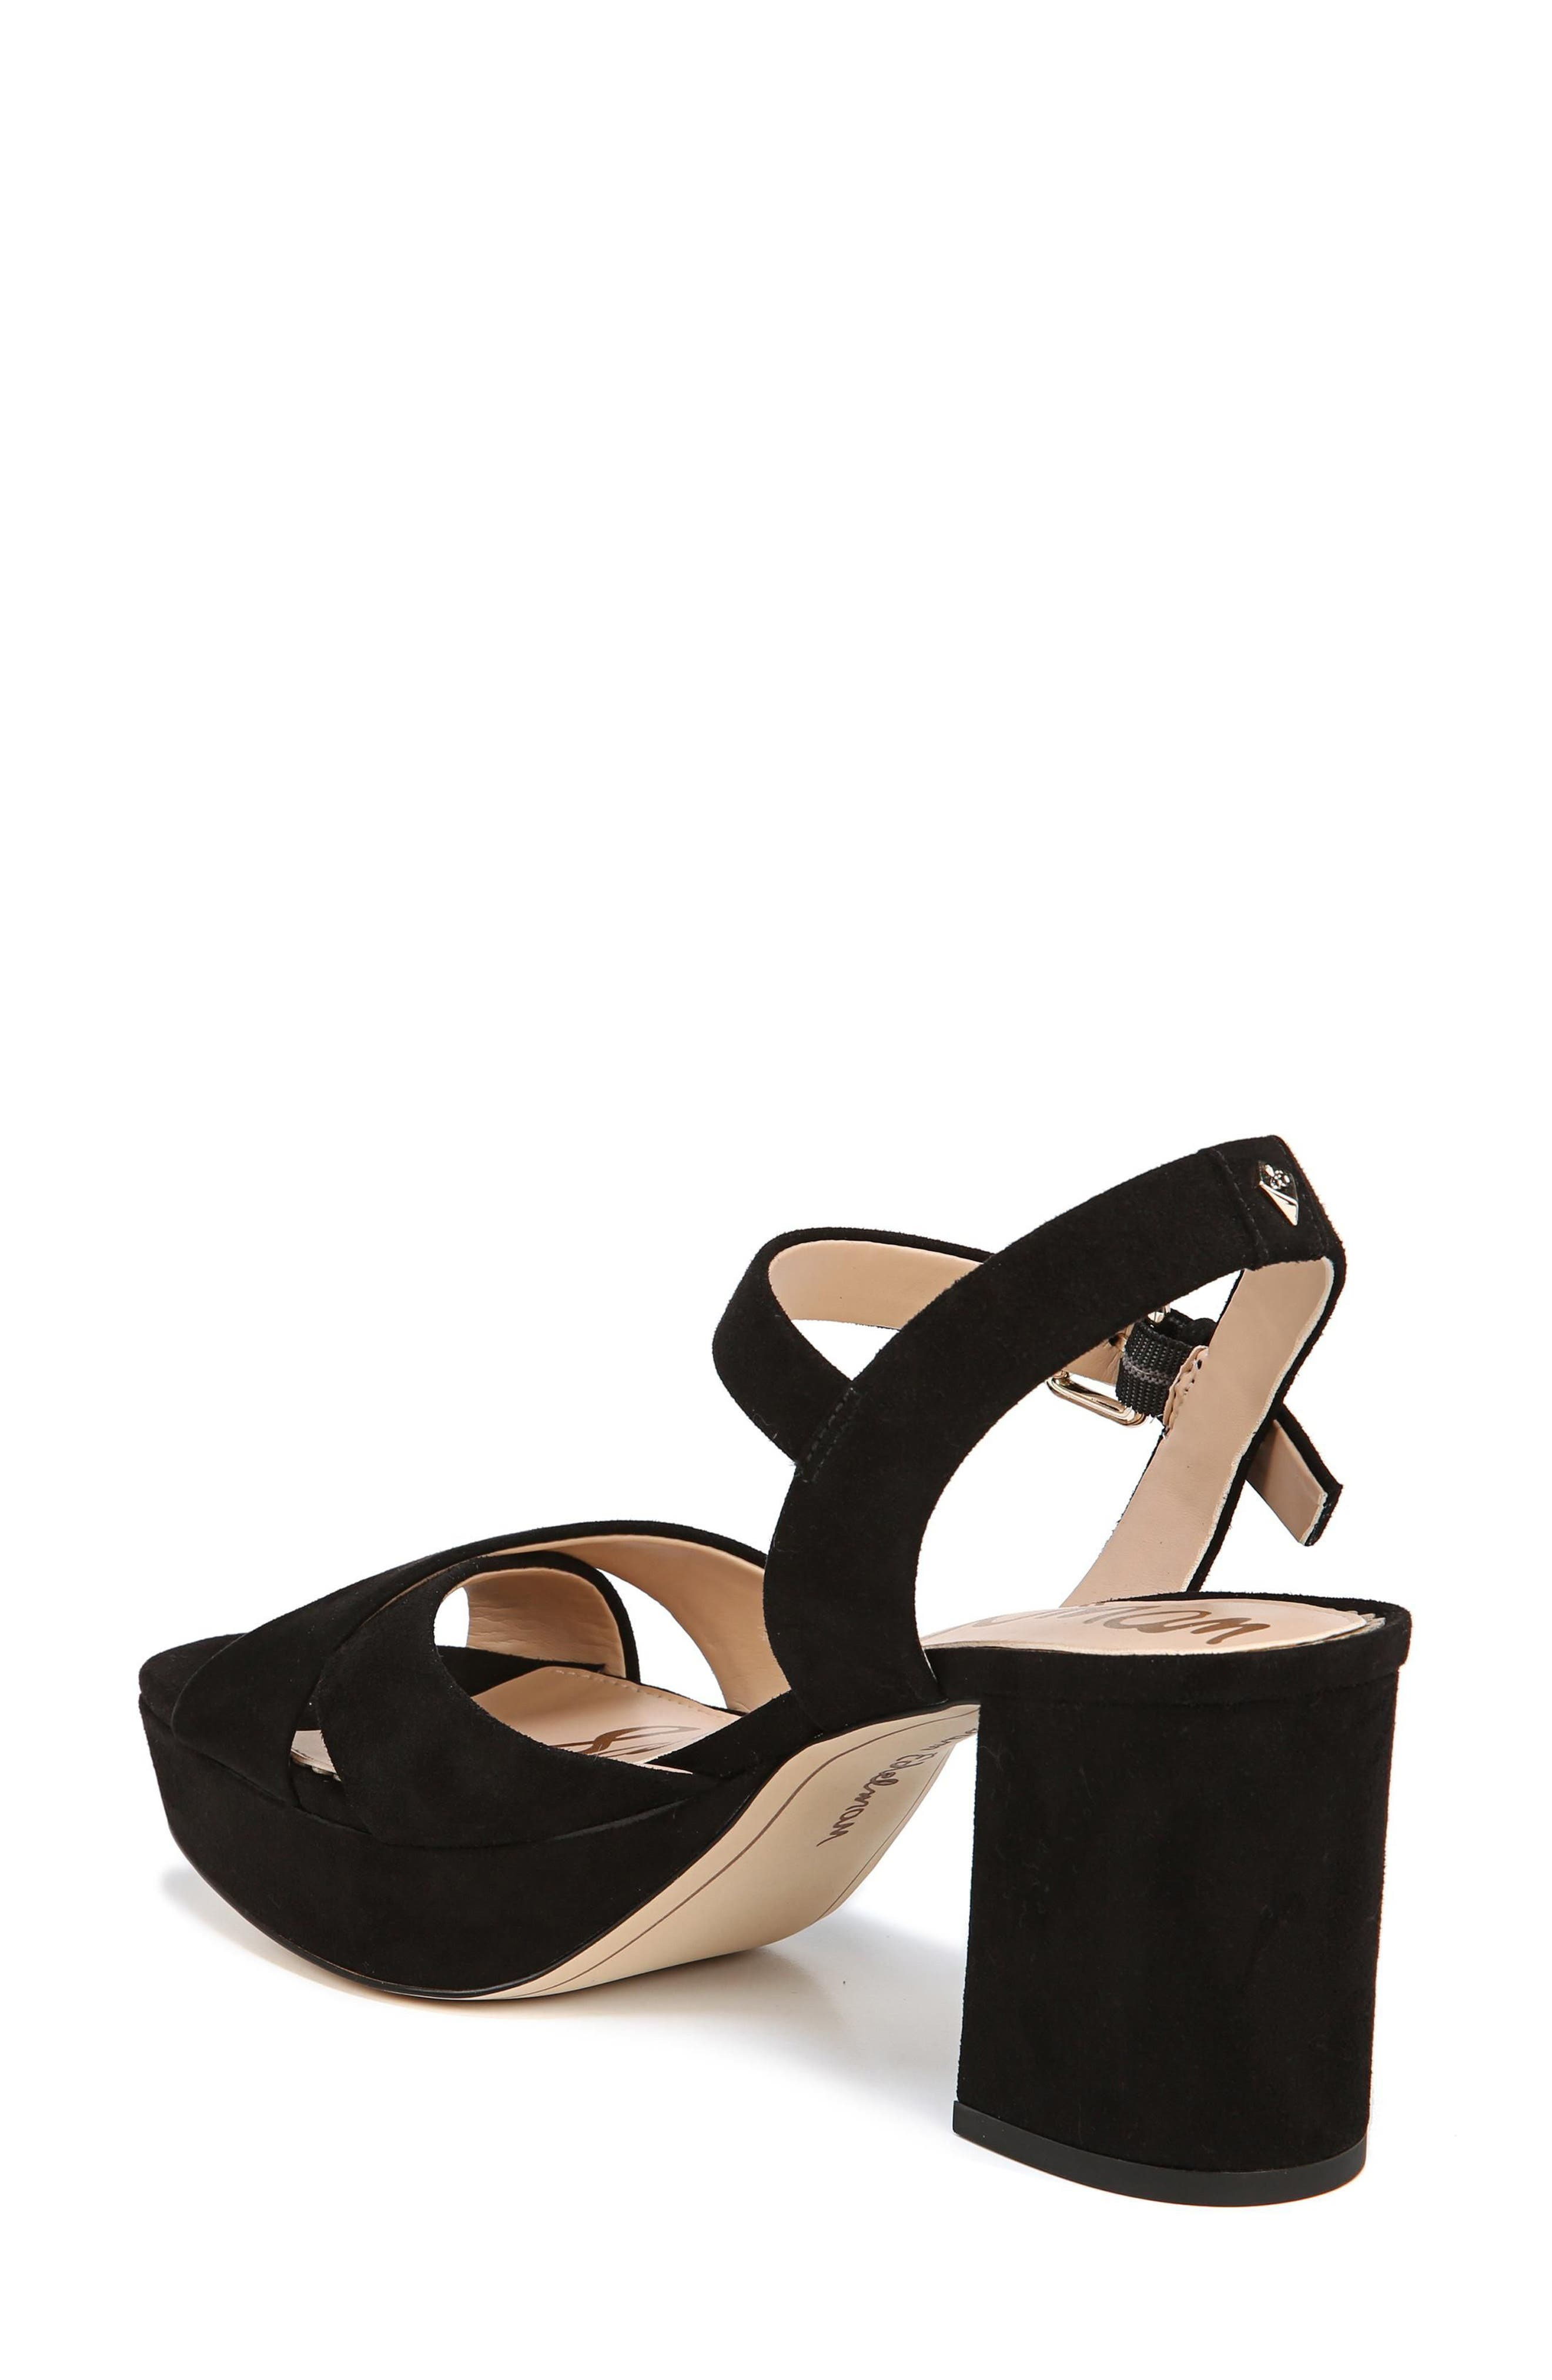 Jolene Platform Sandal,                             Alternate thumbnail 2, color,                             BLACK SUEDE